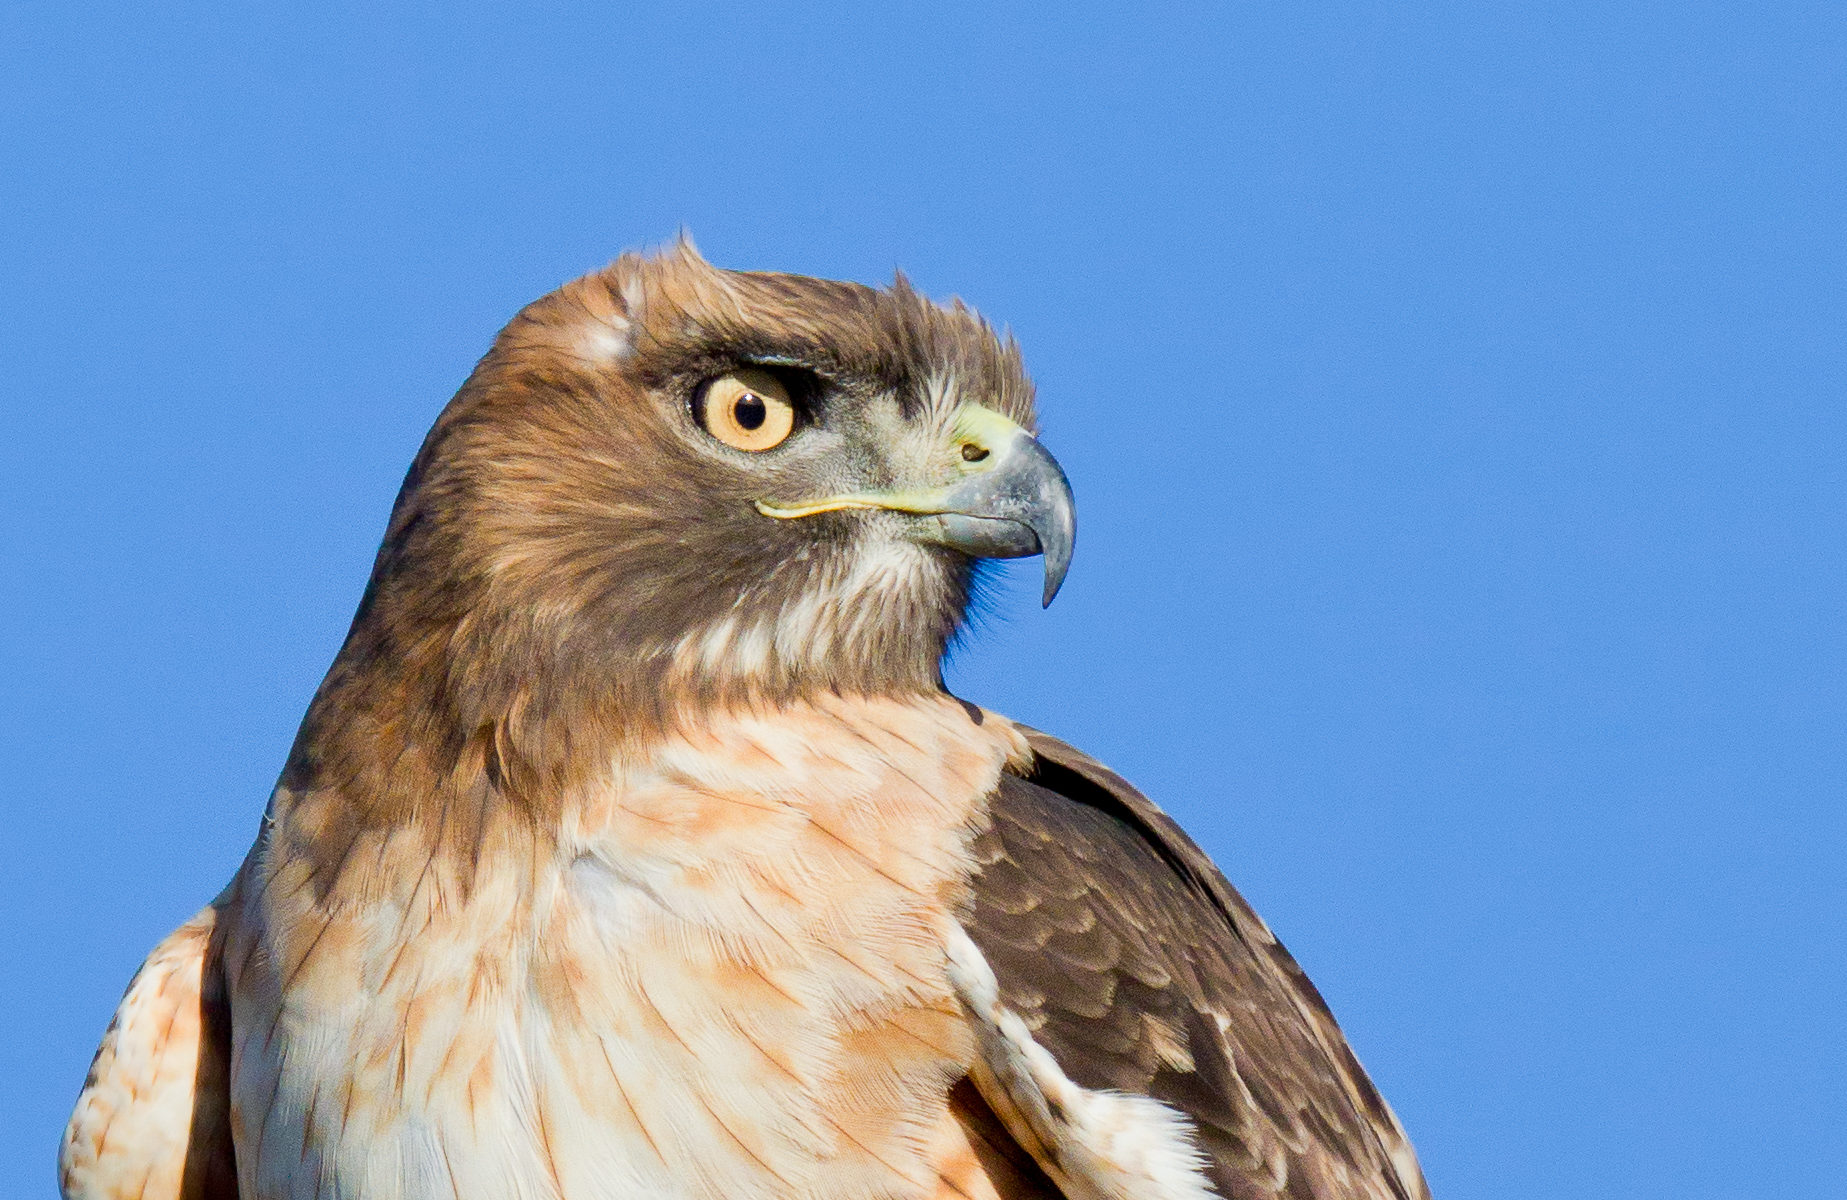 A red-tailed hawk constantly scans the surrounding area for prey